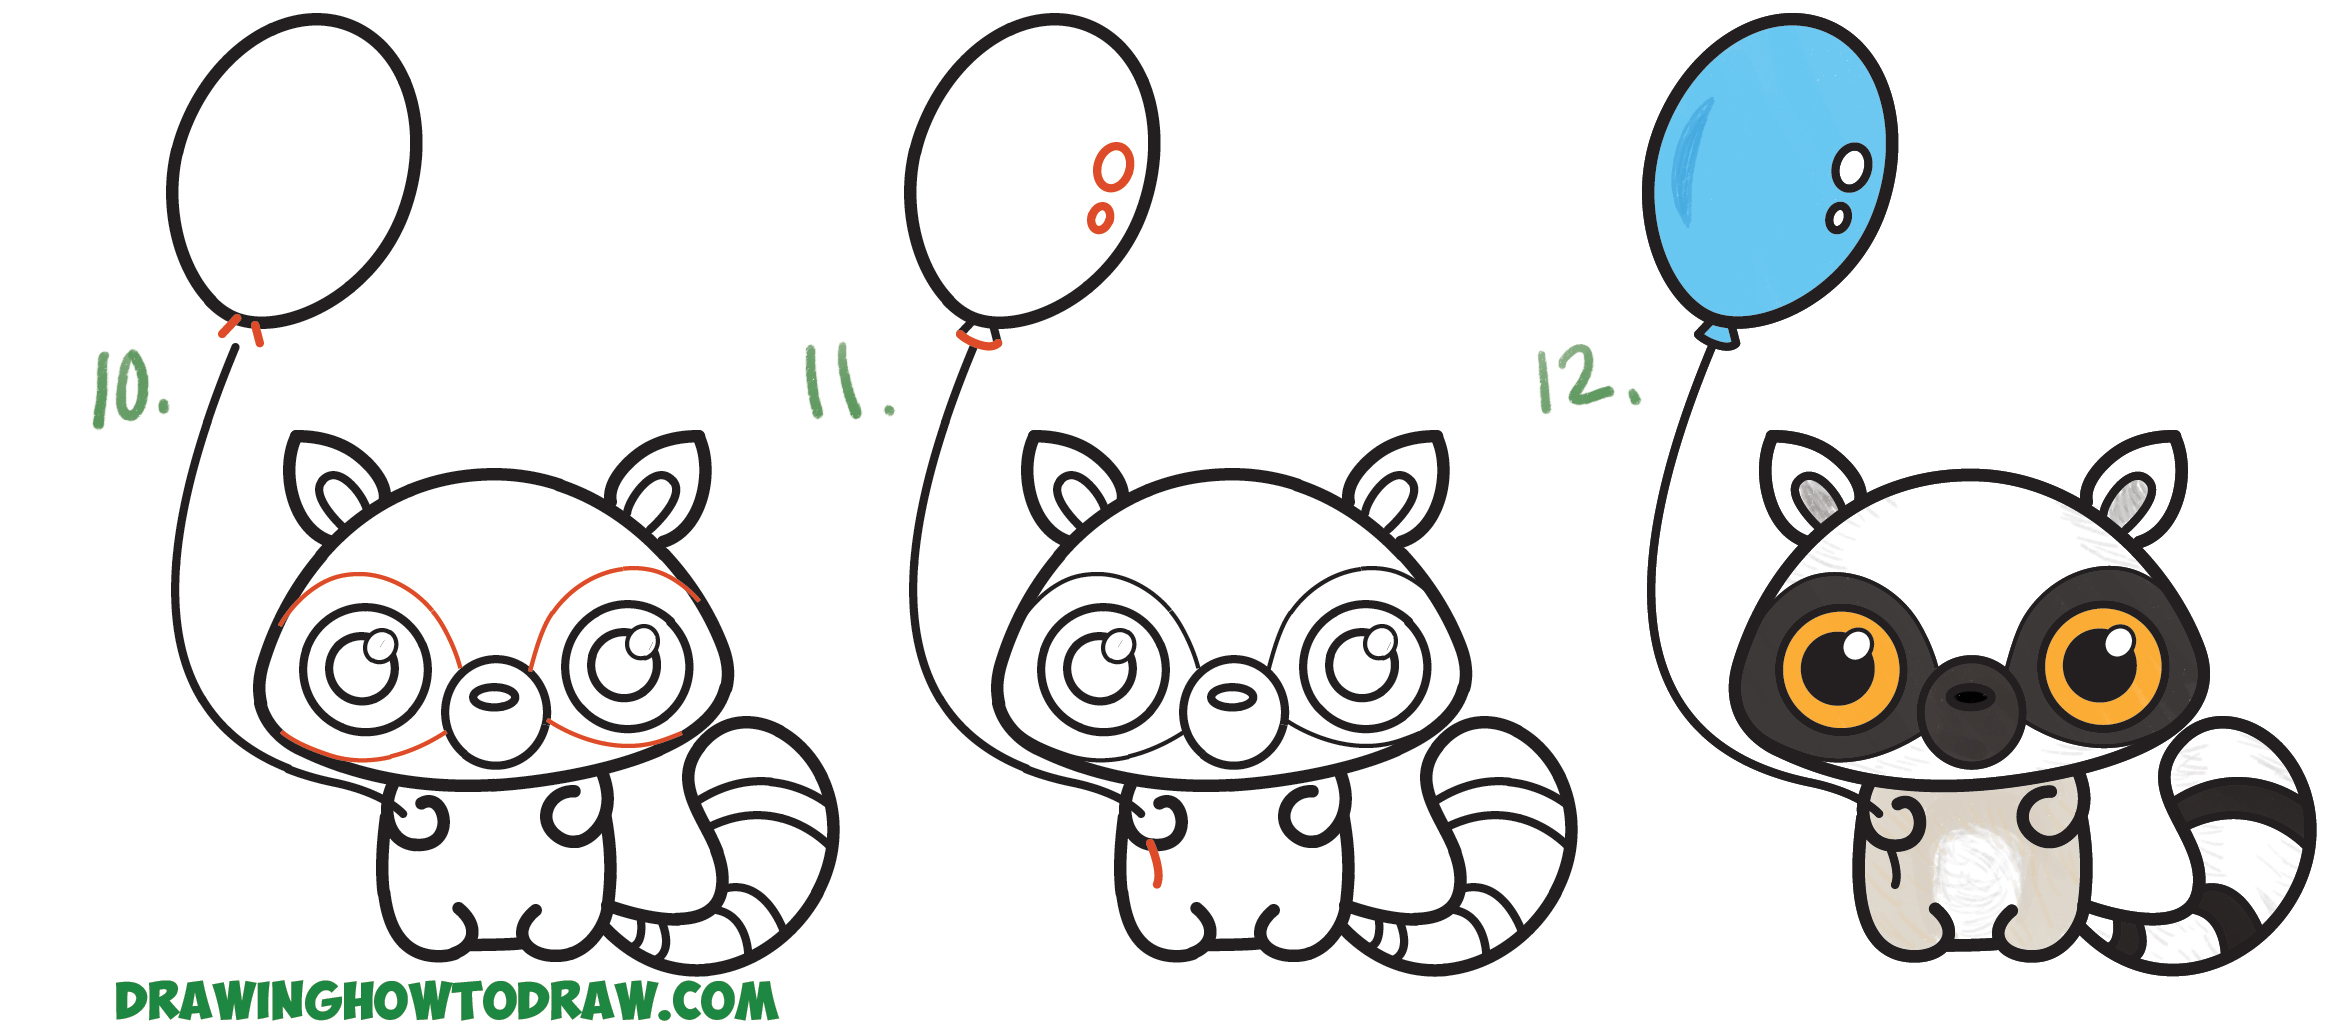 Learn How to Draw a Cute Cartoon Llemur (Kawaii / Chibi) with Simple Steps Drawing Lesson for Children